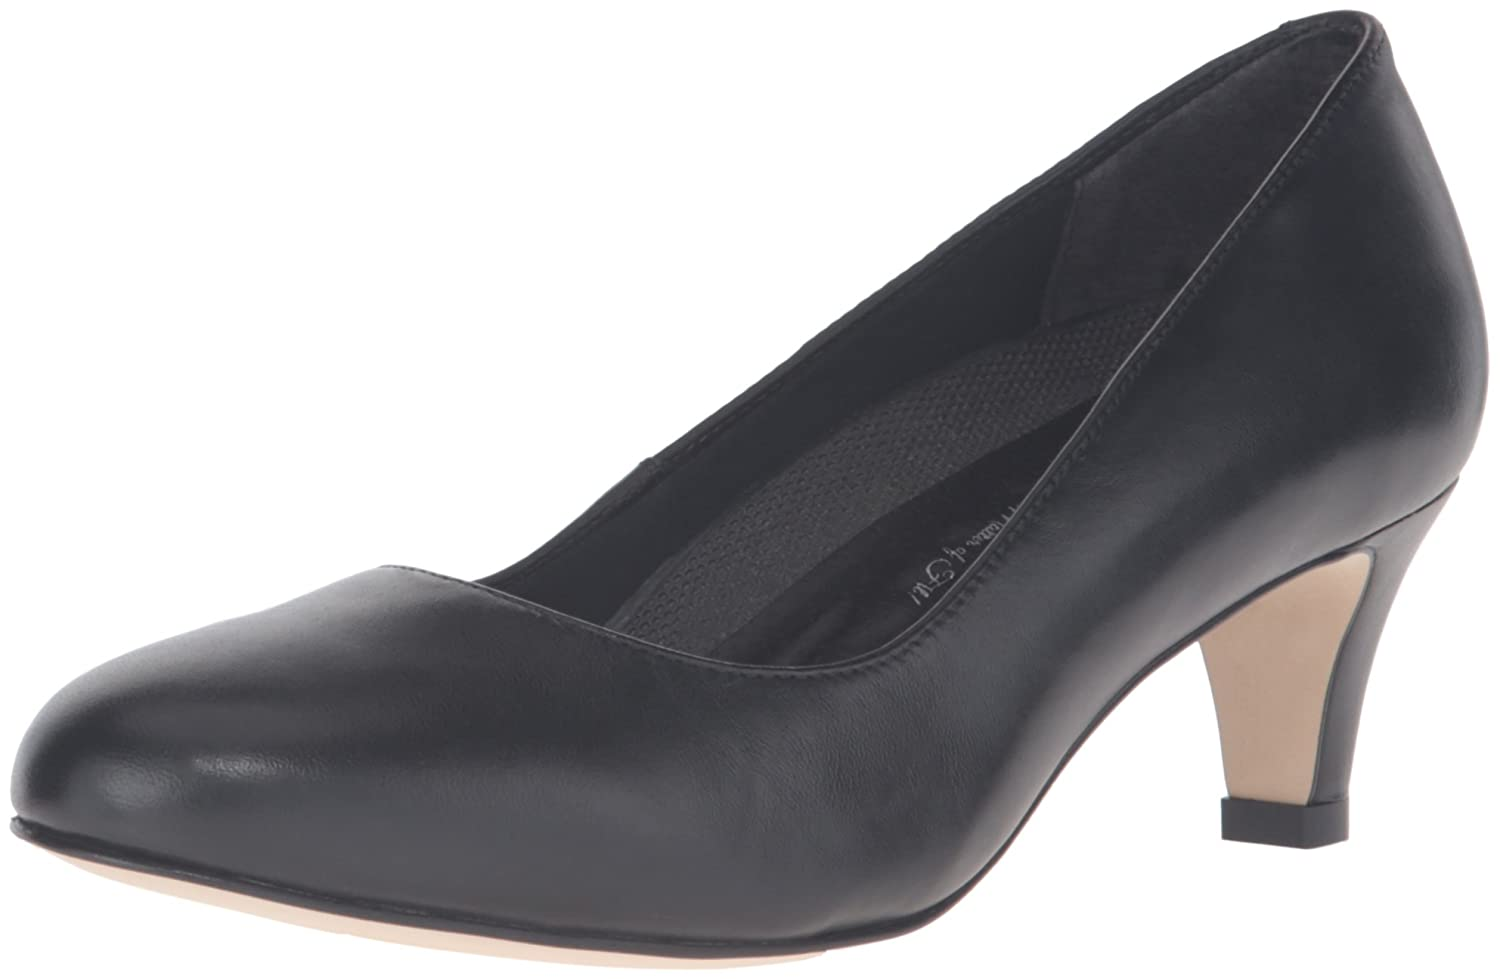 Walking Cradles Women's Joy Dress Pump B01BNFQWBQ 10 B(M) US|Black Leather